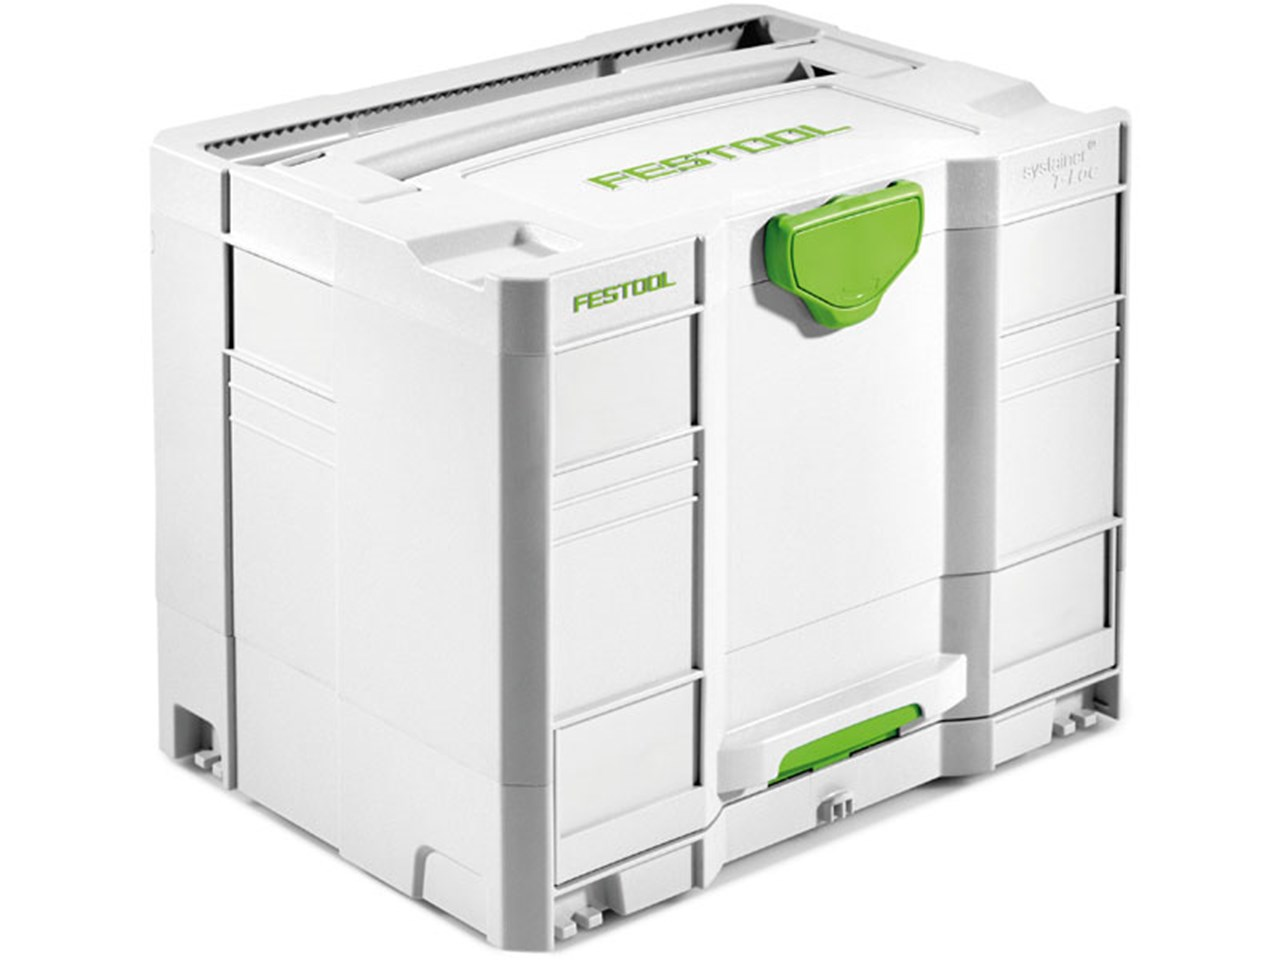 Festool 200118 / SYS-Combi 3 Systainer T-LOC 396 x 296 x 315